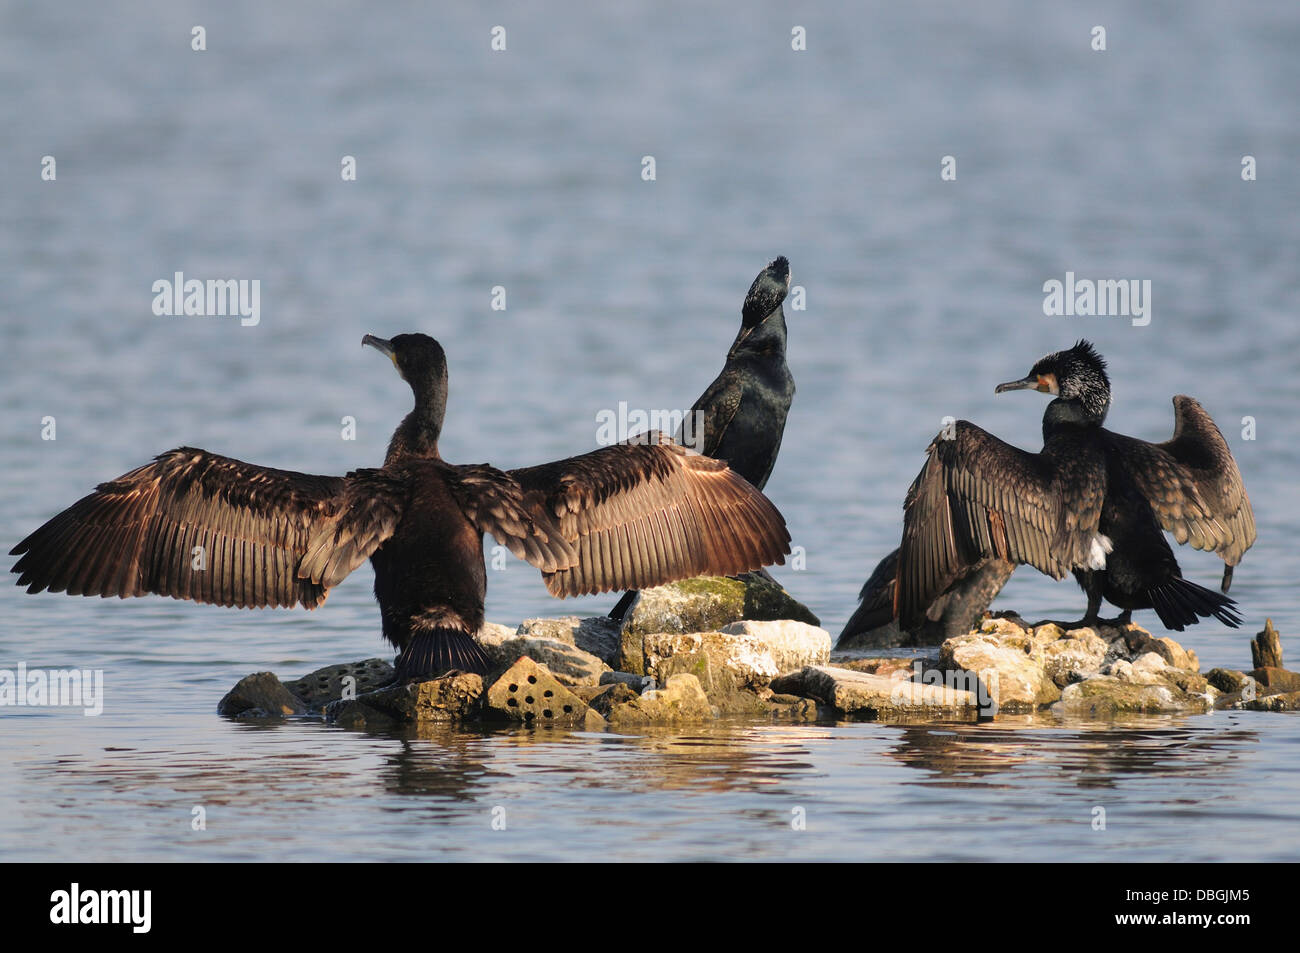 A gulp of cormorants on a rocky island drying their wings - Stock Image